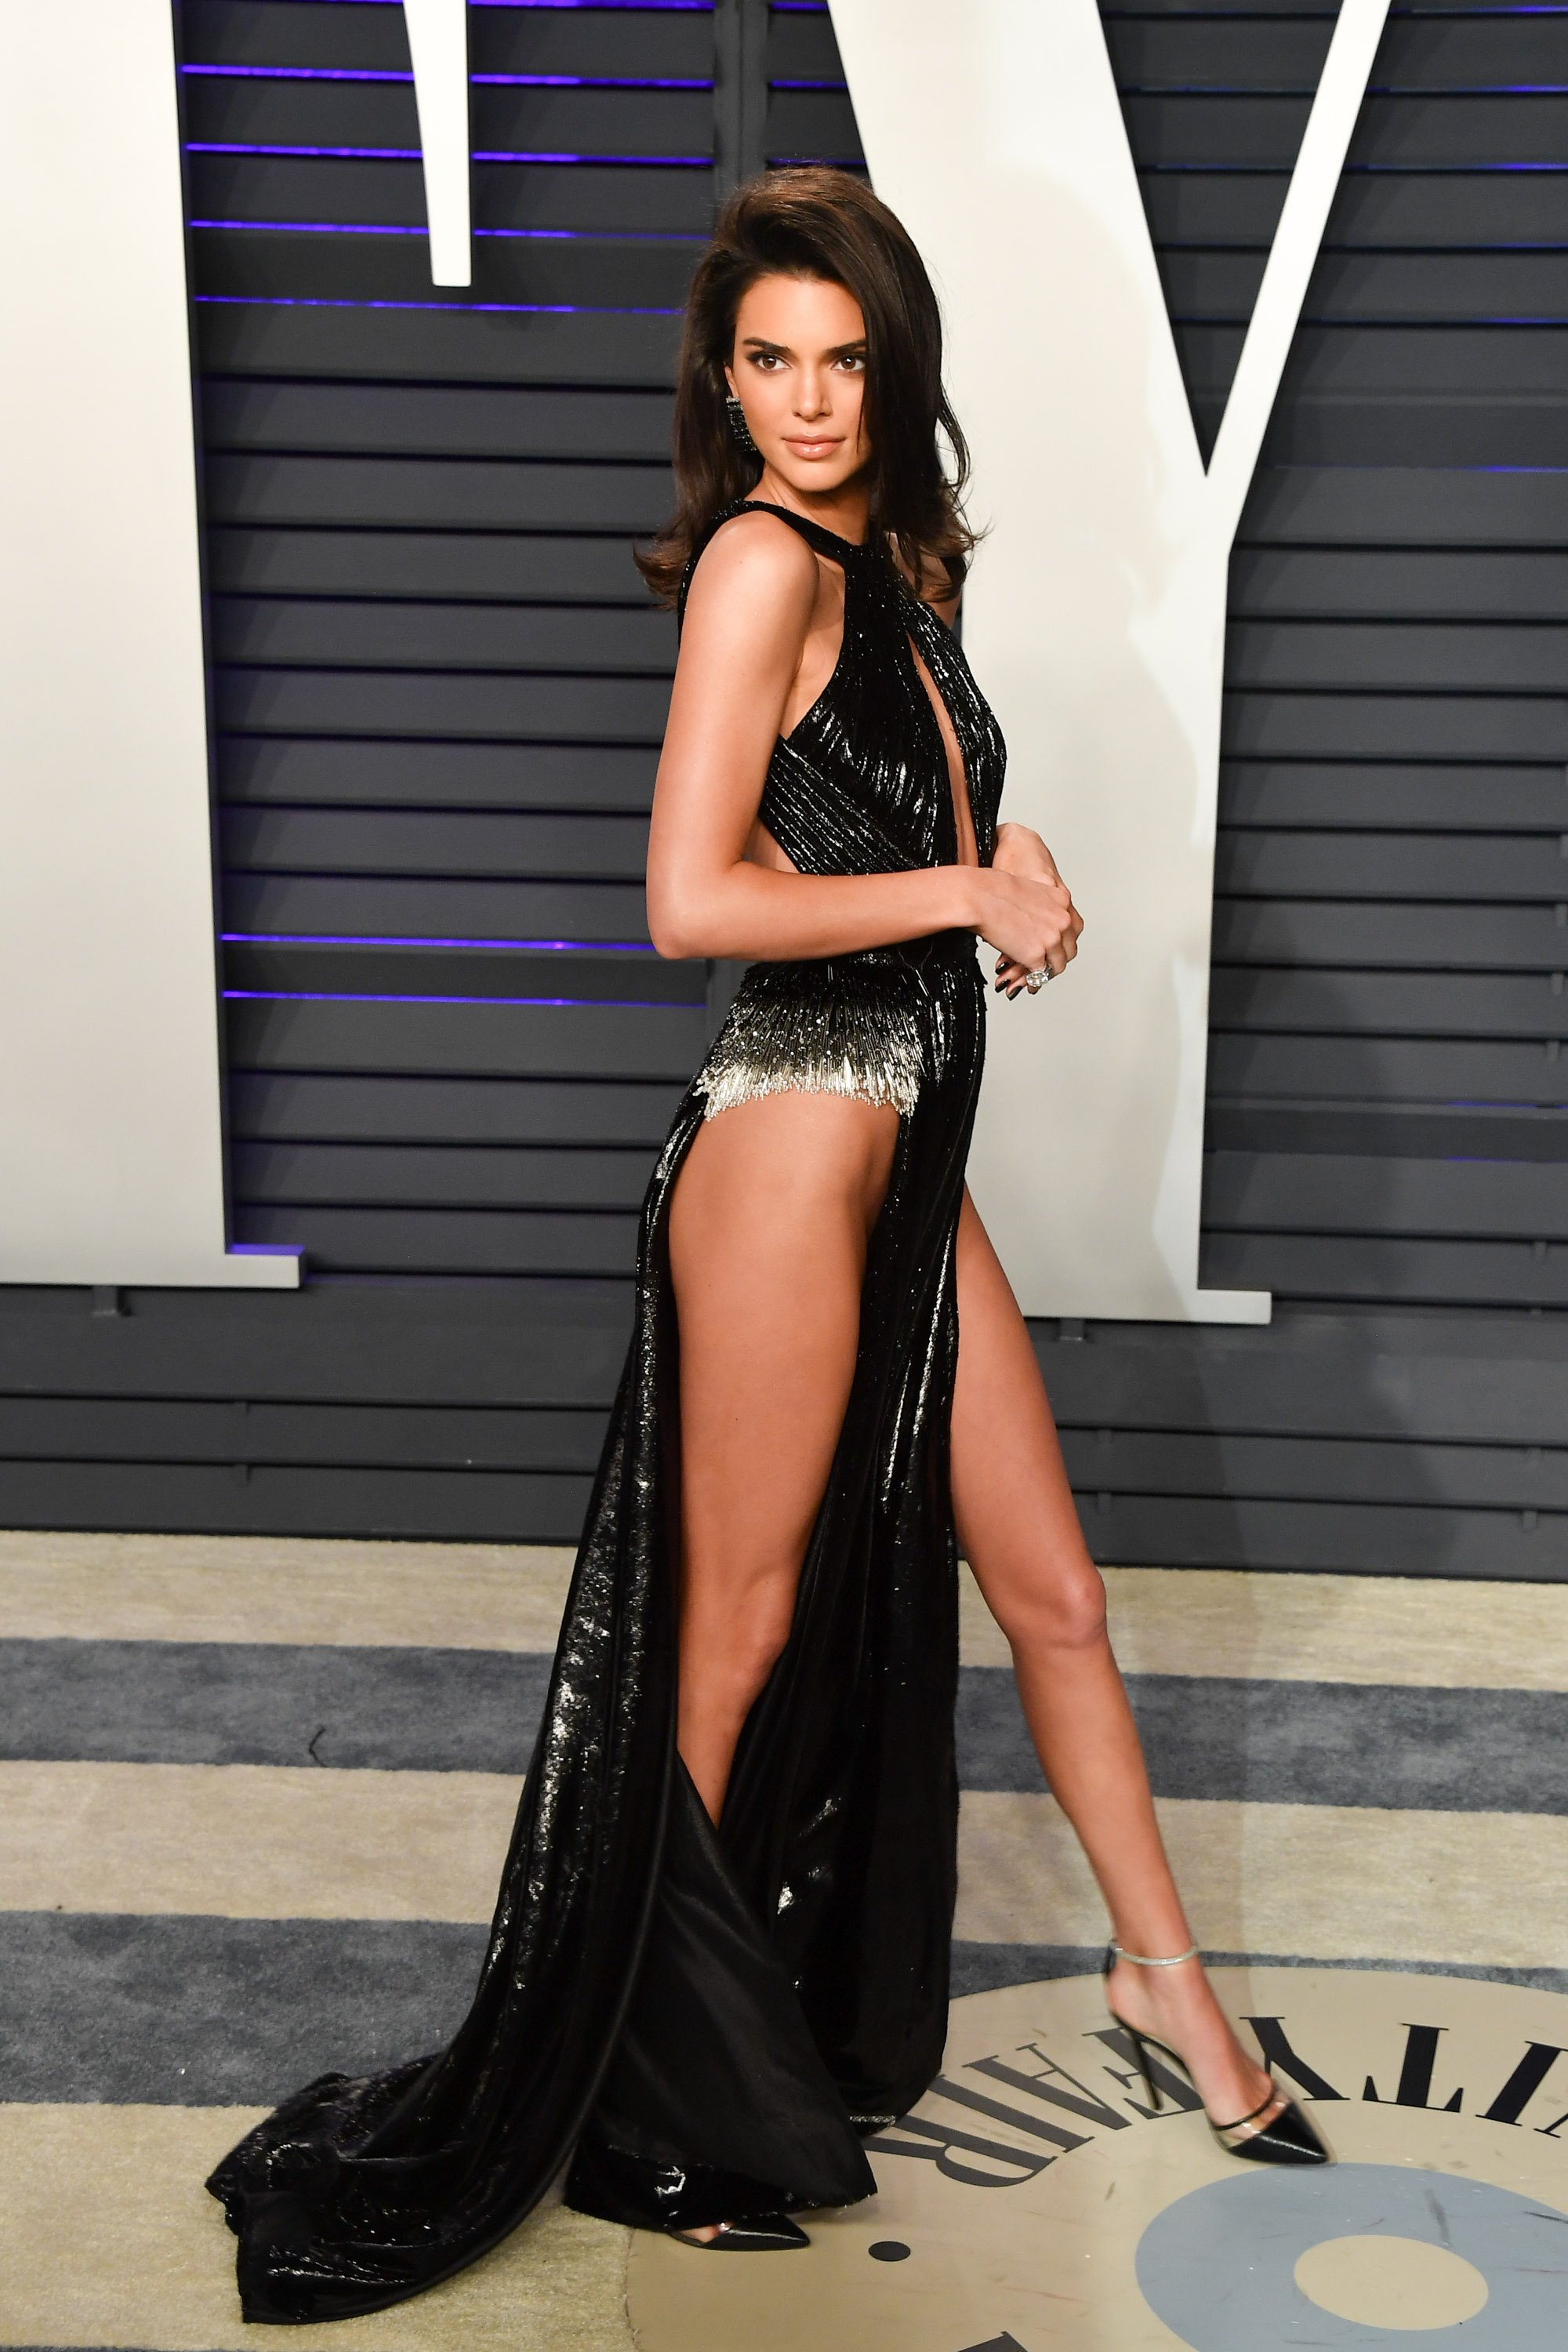 Kendall Jenner at the 2019 Vanity Fair Oscar afterparty | Photo: Getty Images